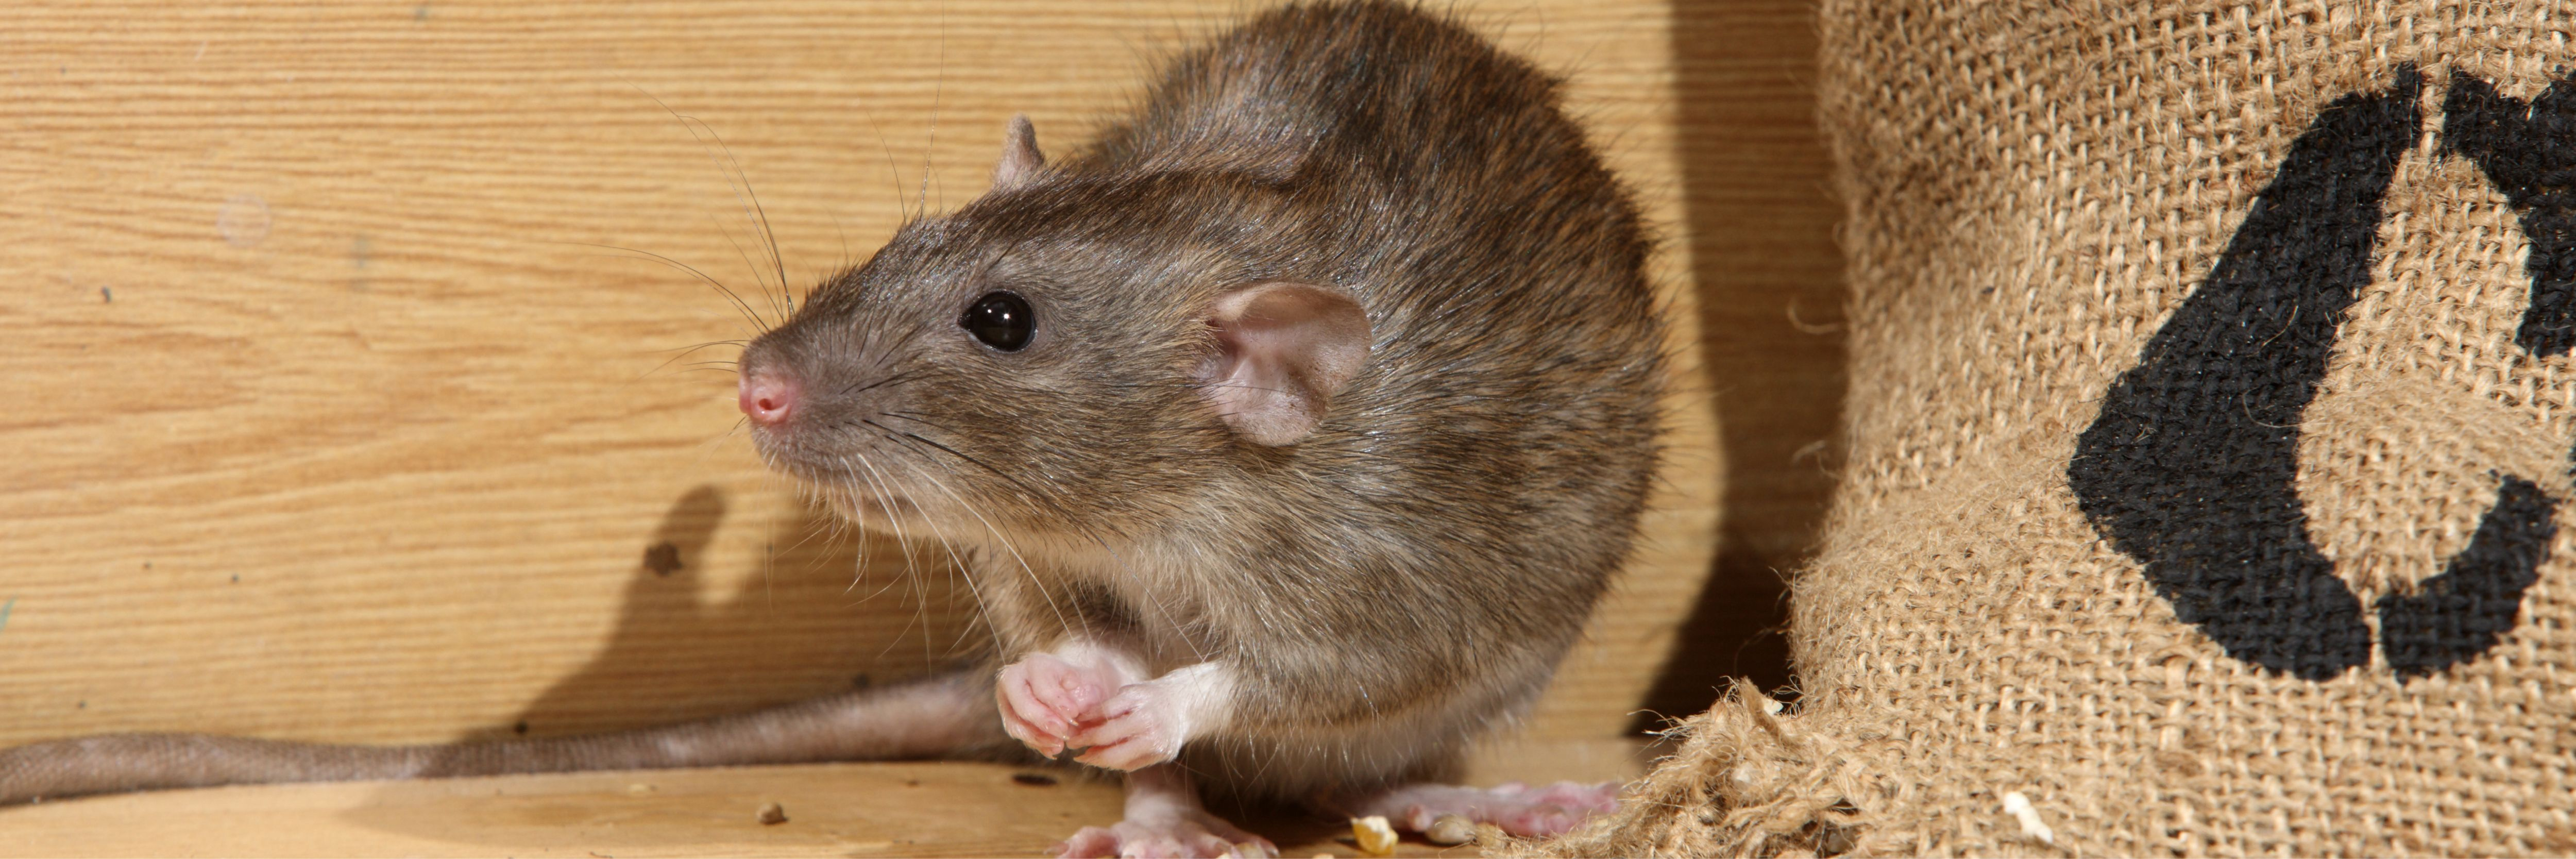 Rodents Pose Significant Risks to Poultry Producers